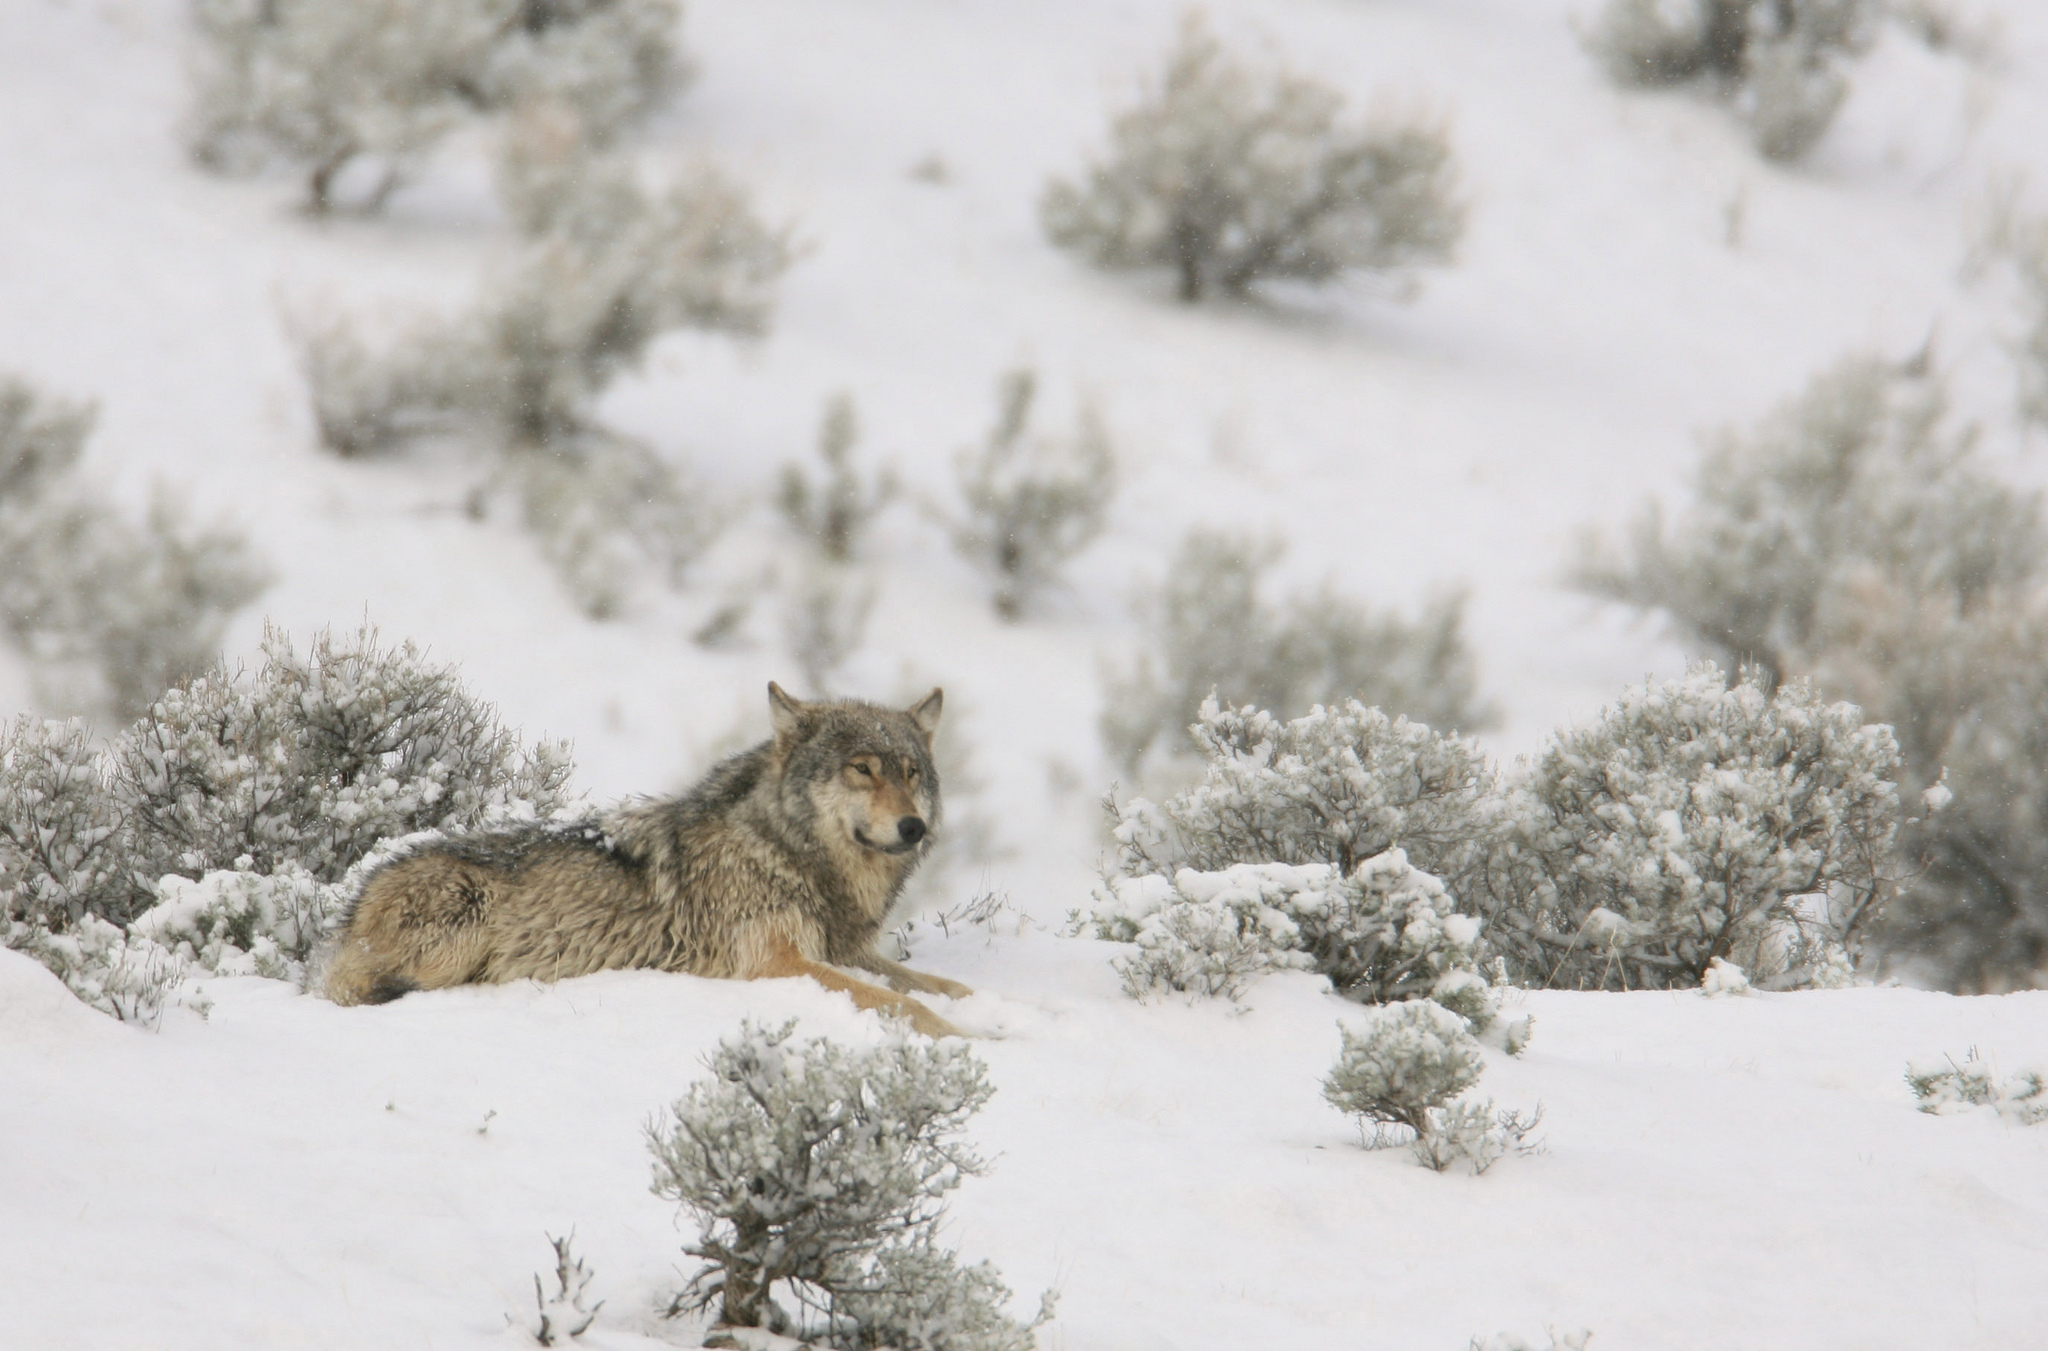 quotyellowstone is the mecca to see wolvesquot says national